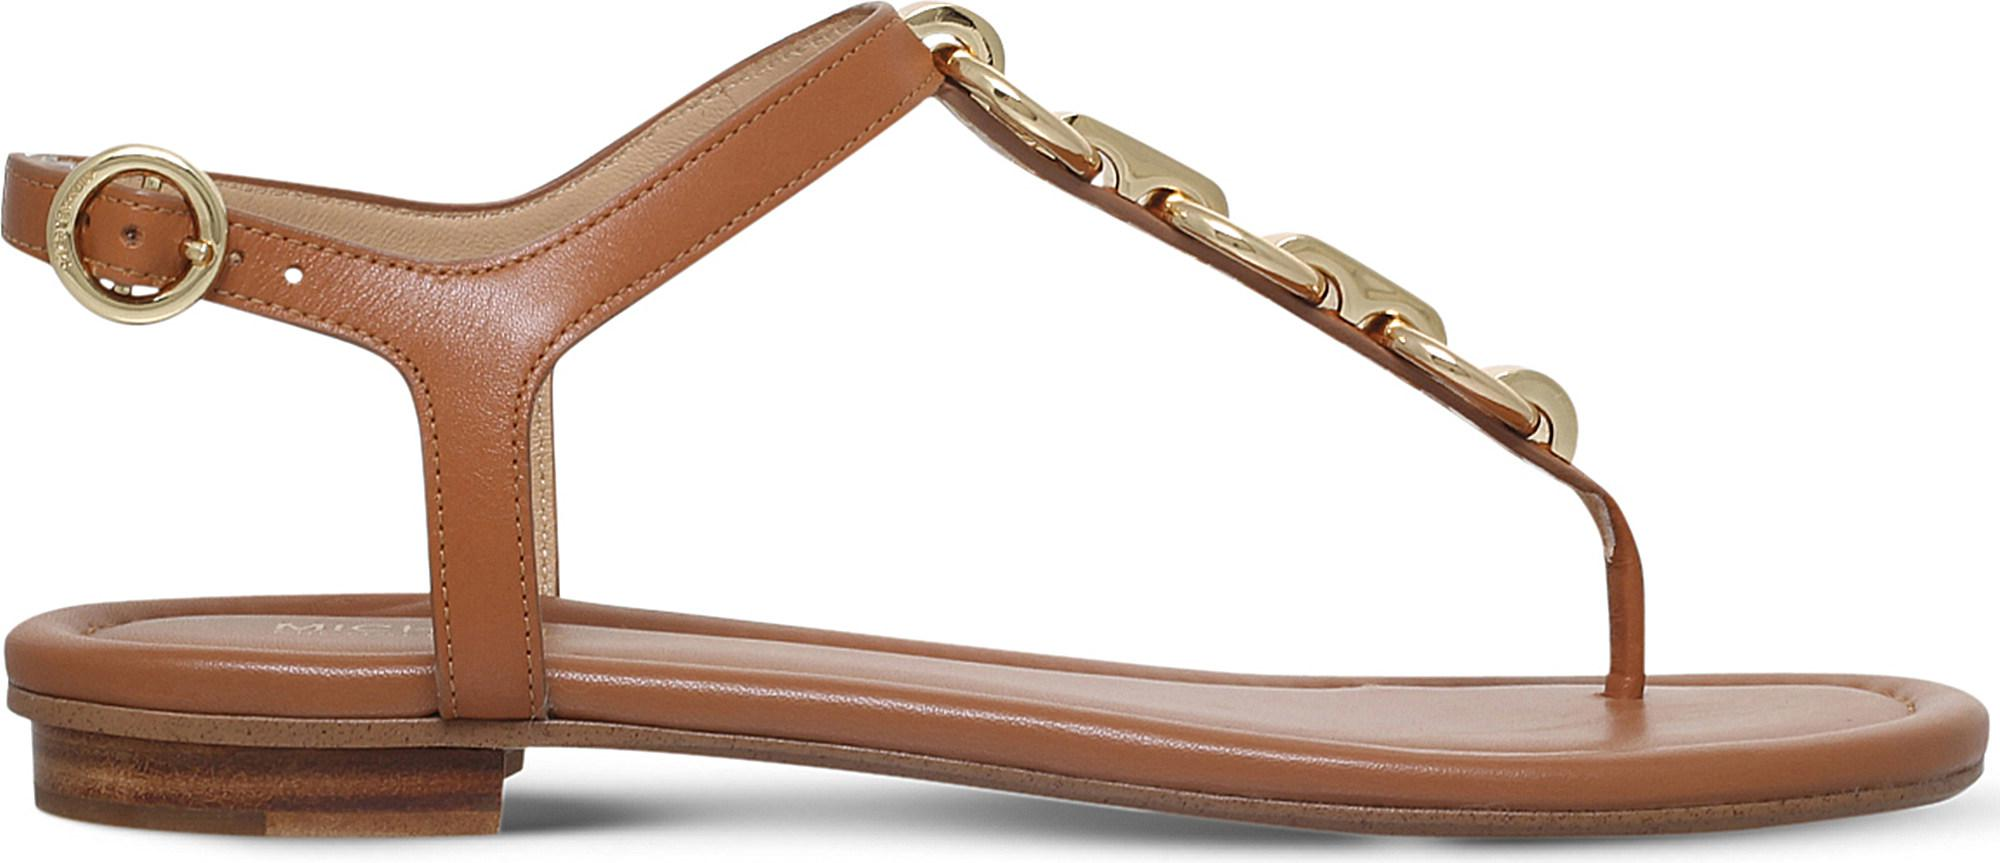 2432af56948a MICHAEL Michael Kors. Women s Mahari Leather Thong Sandals